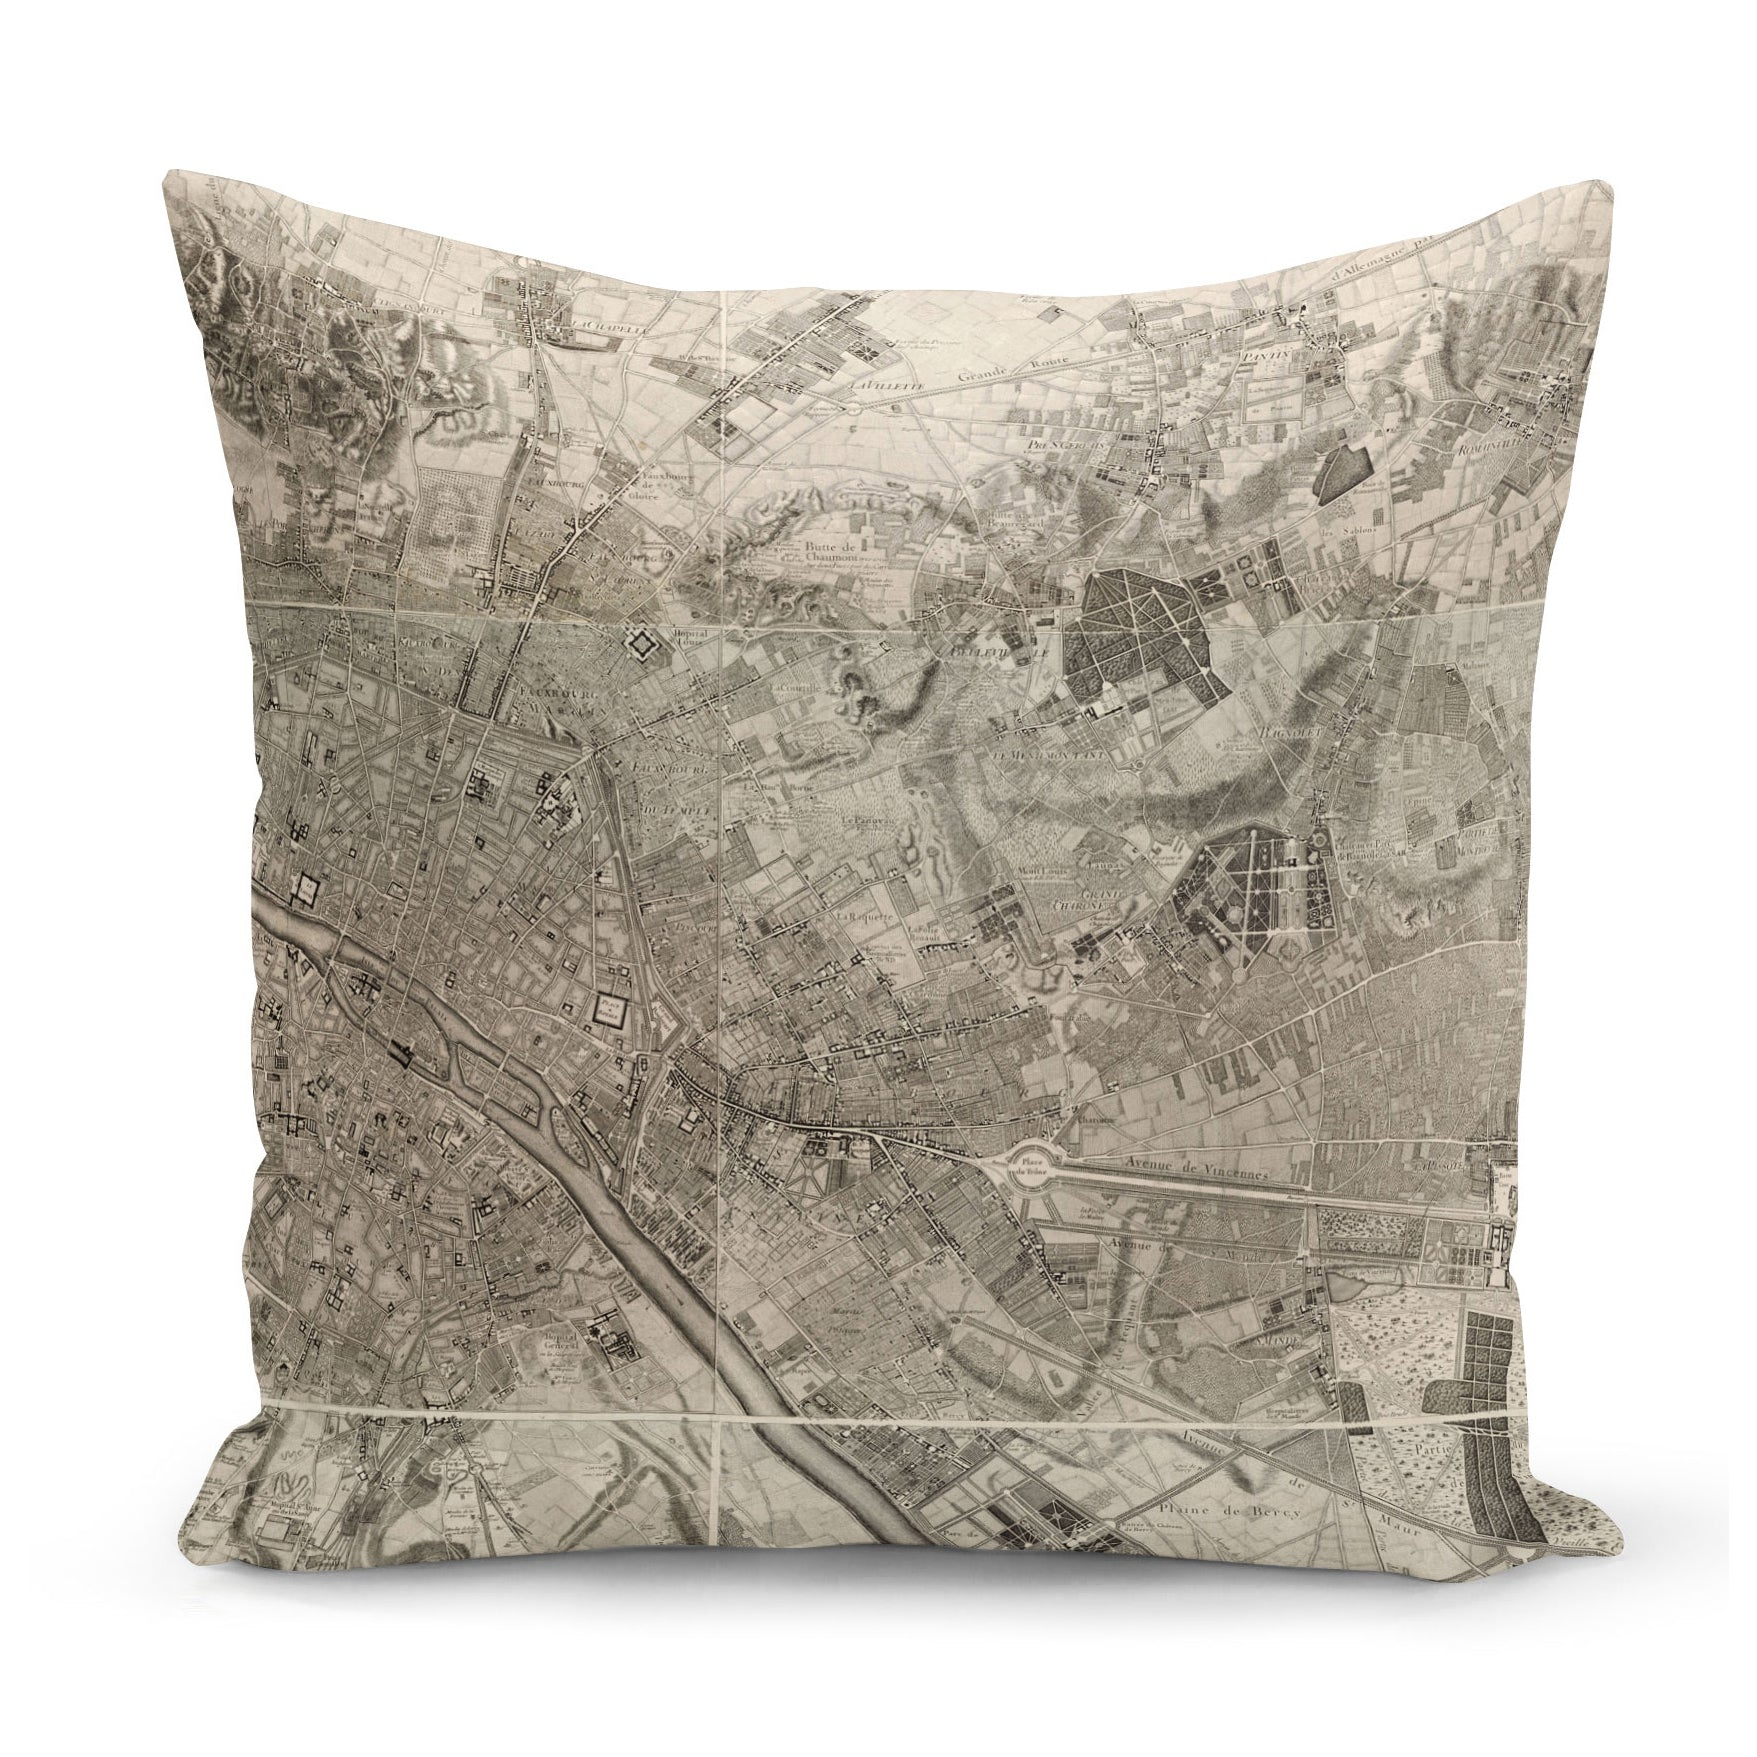 cushion with print of 18th century map of paris